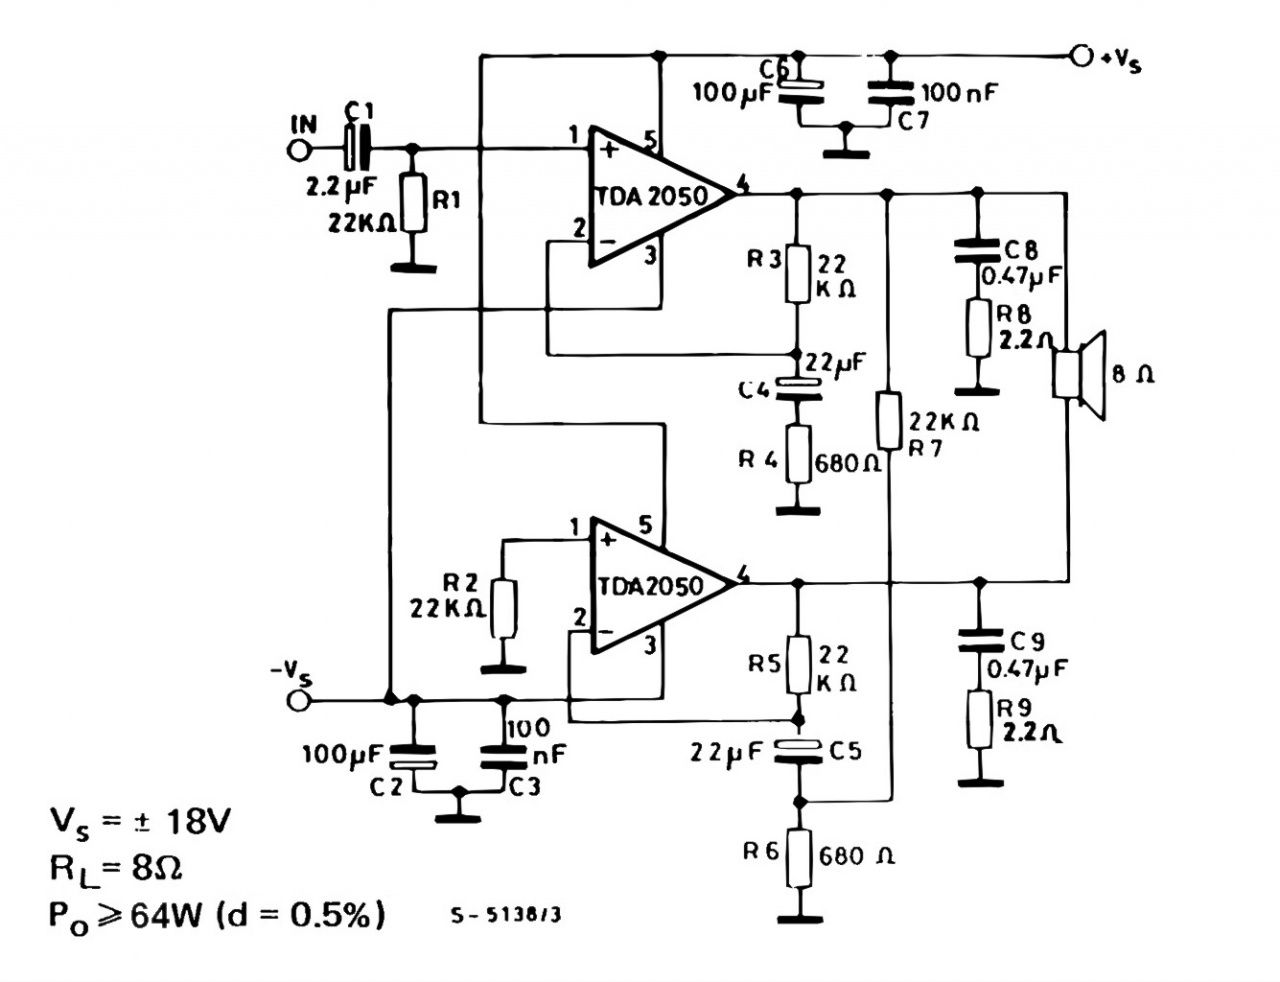 tda2050 bridge amplifier circuit google search projects to try rh pinterest com  tda2050 bridge amplifier circuit diagram